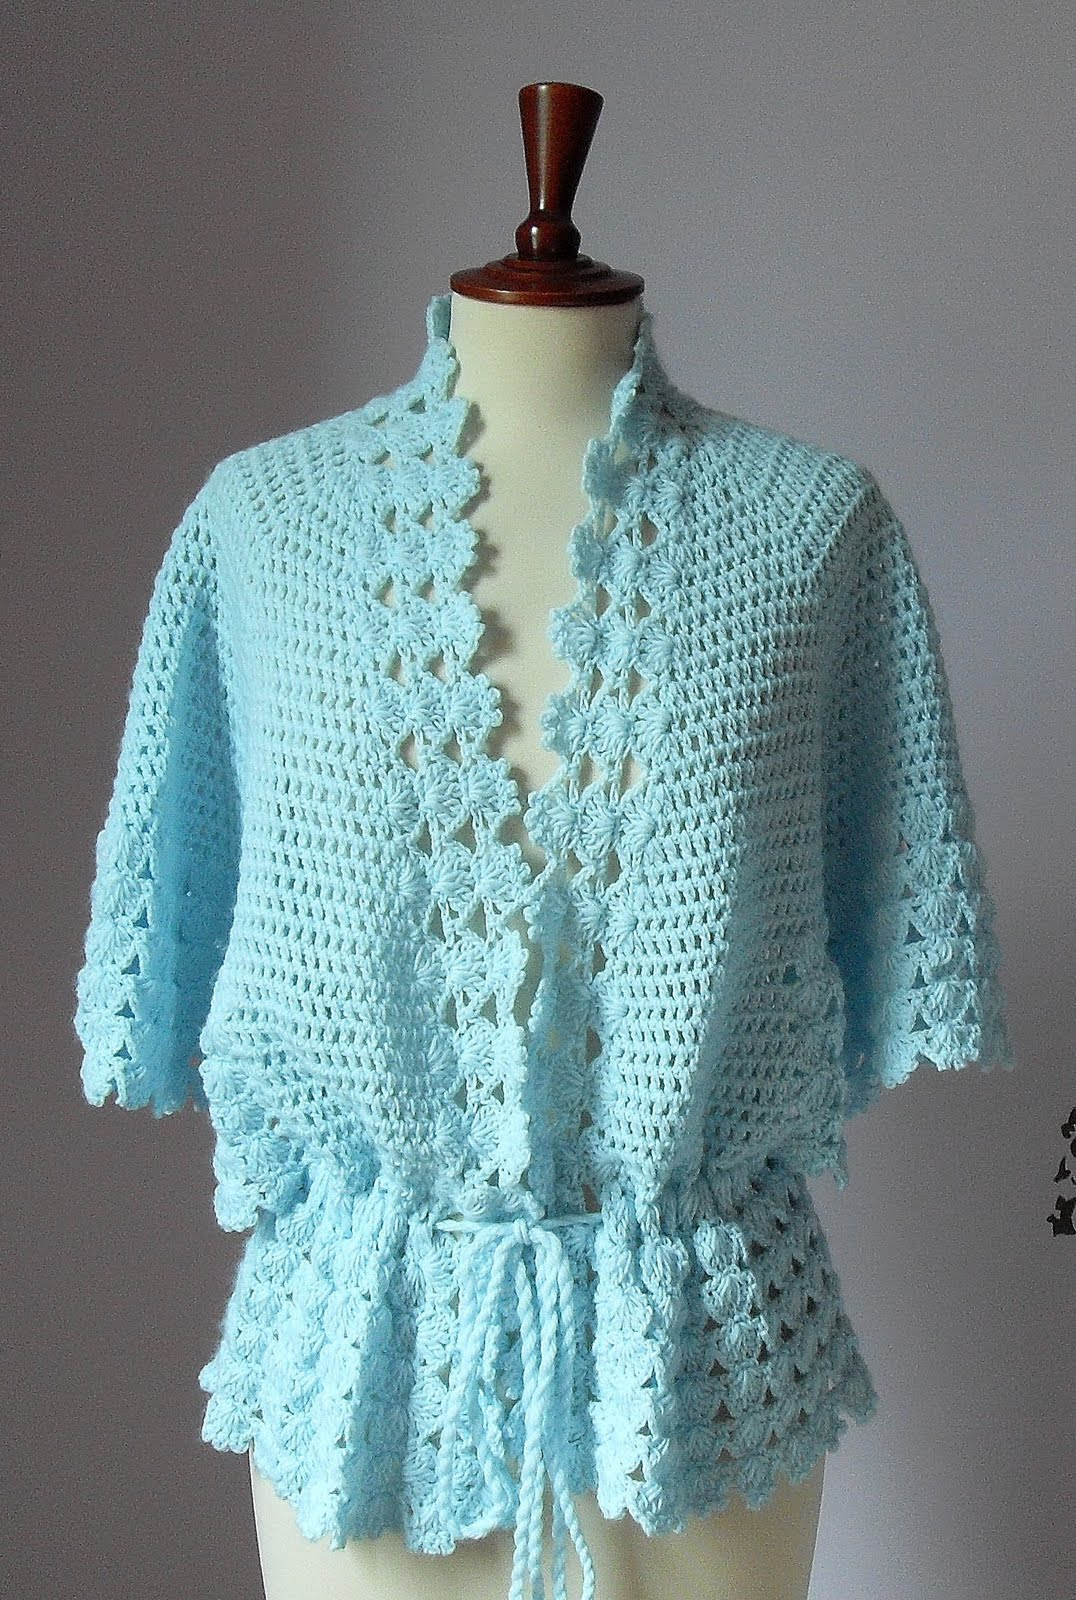 Crocheted Jacket Patterns Crochet And Knitting Patterns